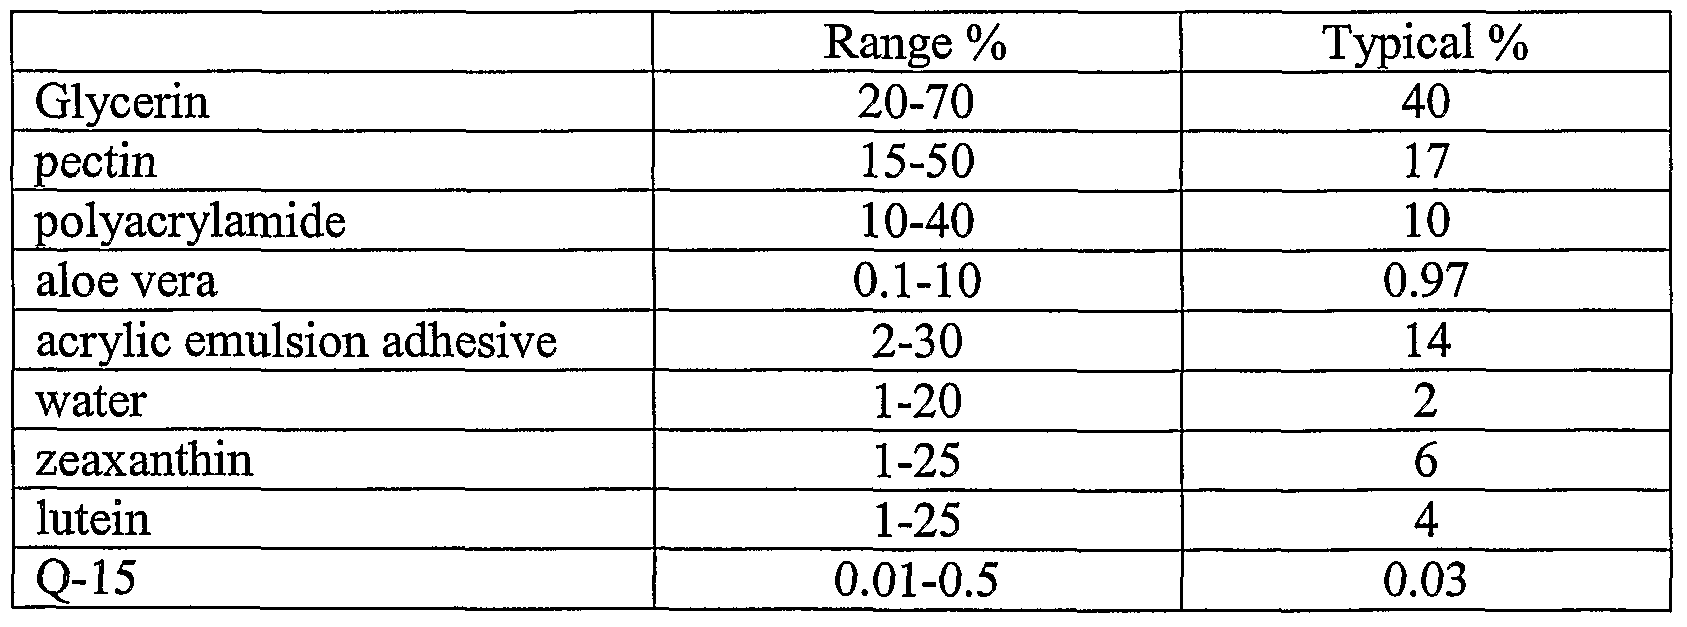 Biaxin on line pricing in canada